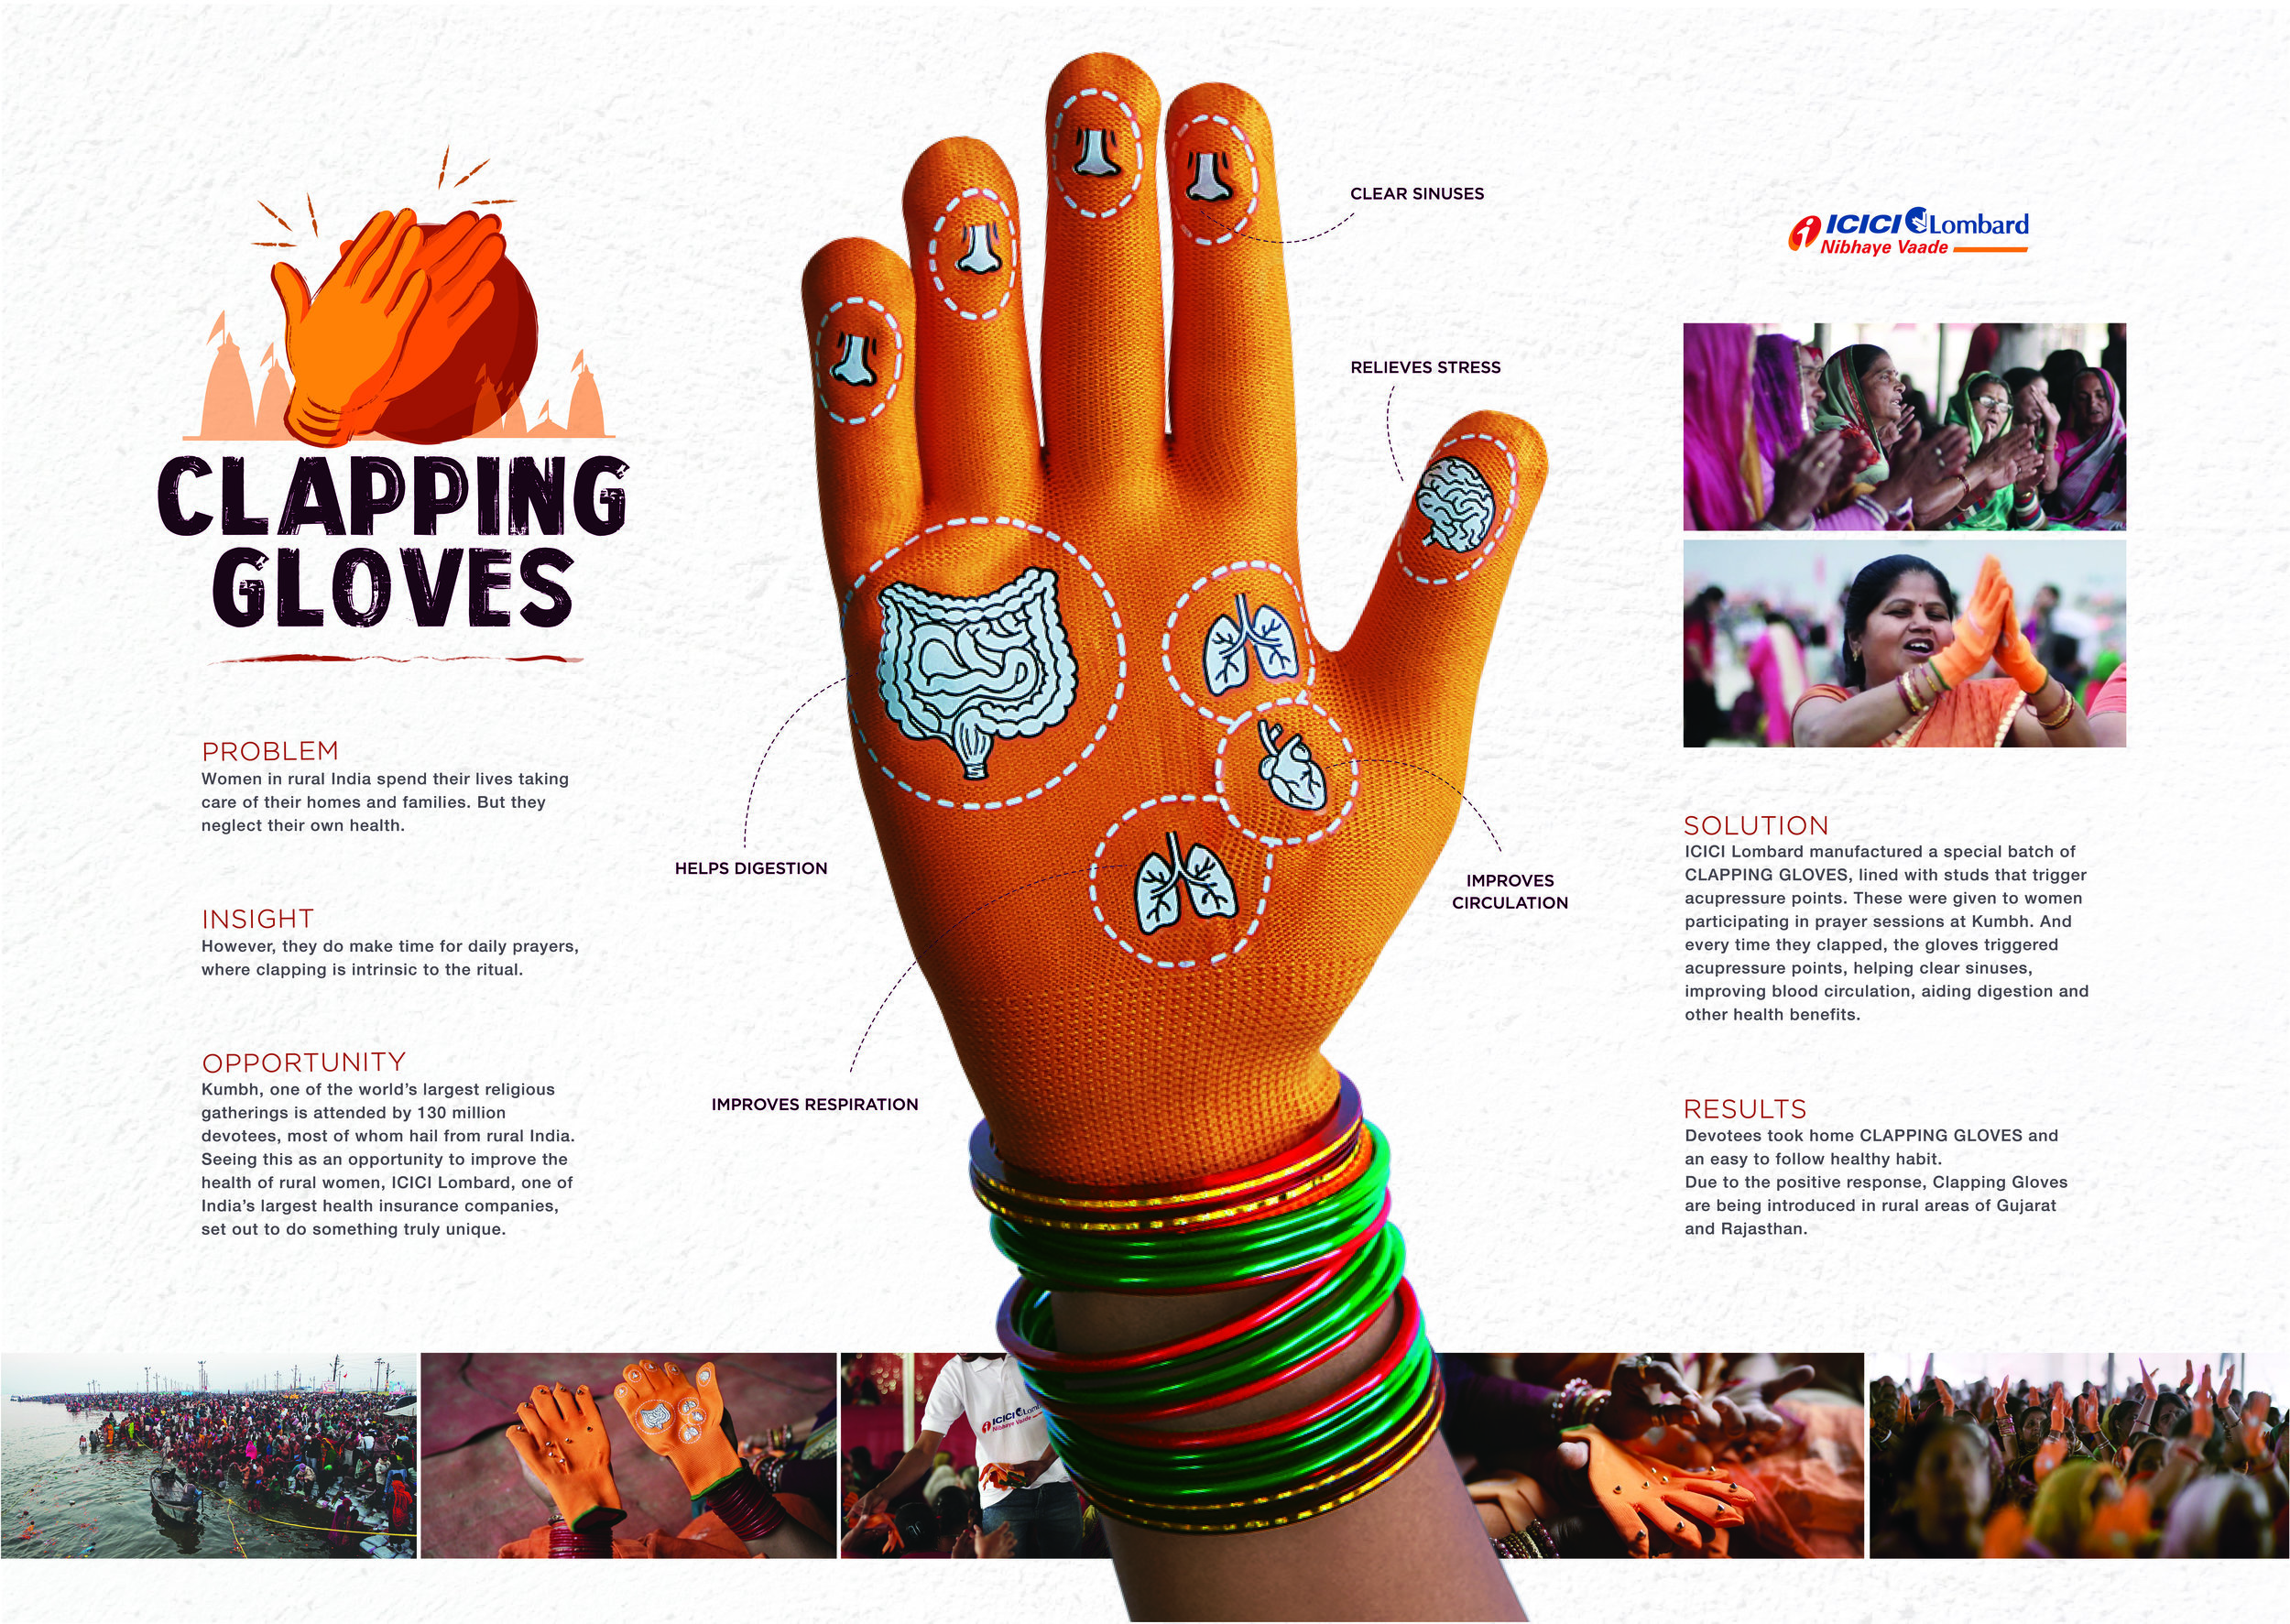 India_ICICI Lombard 'Clapping Gloves'.jpg